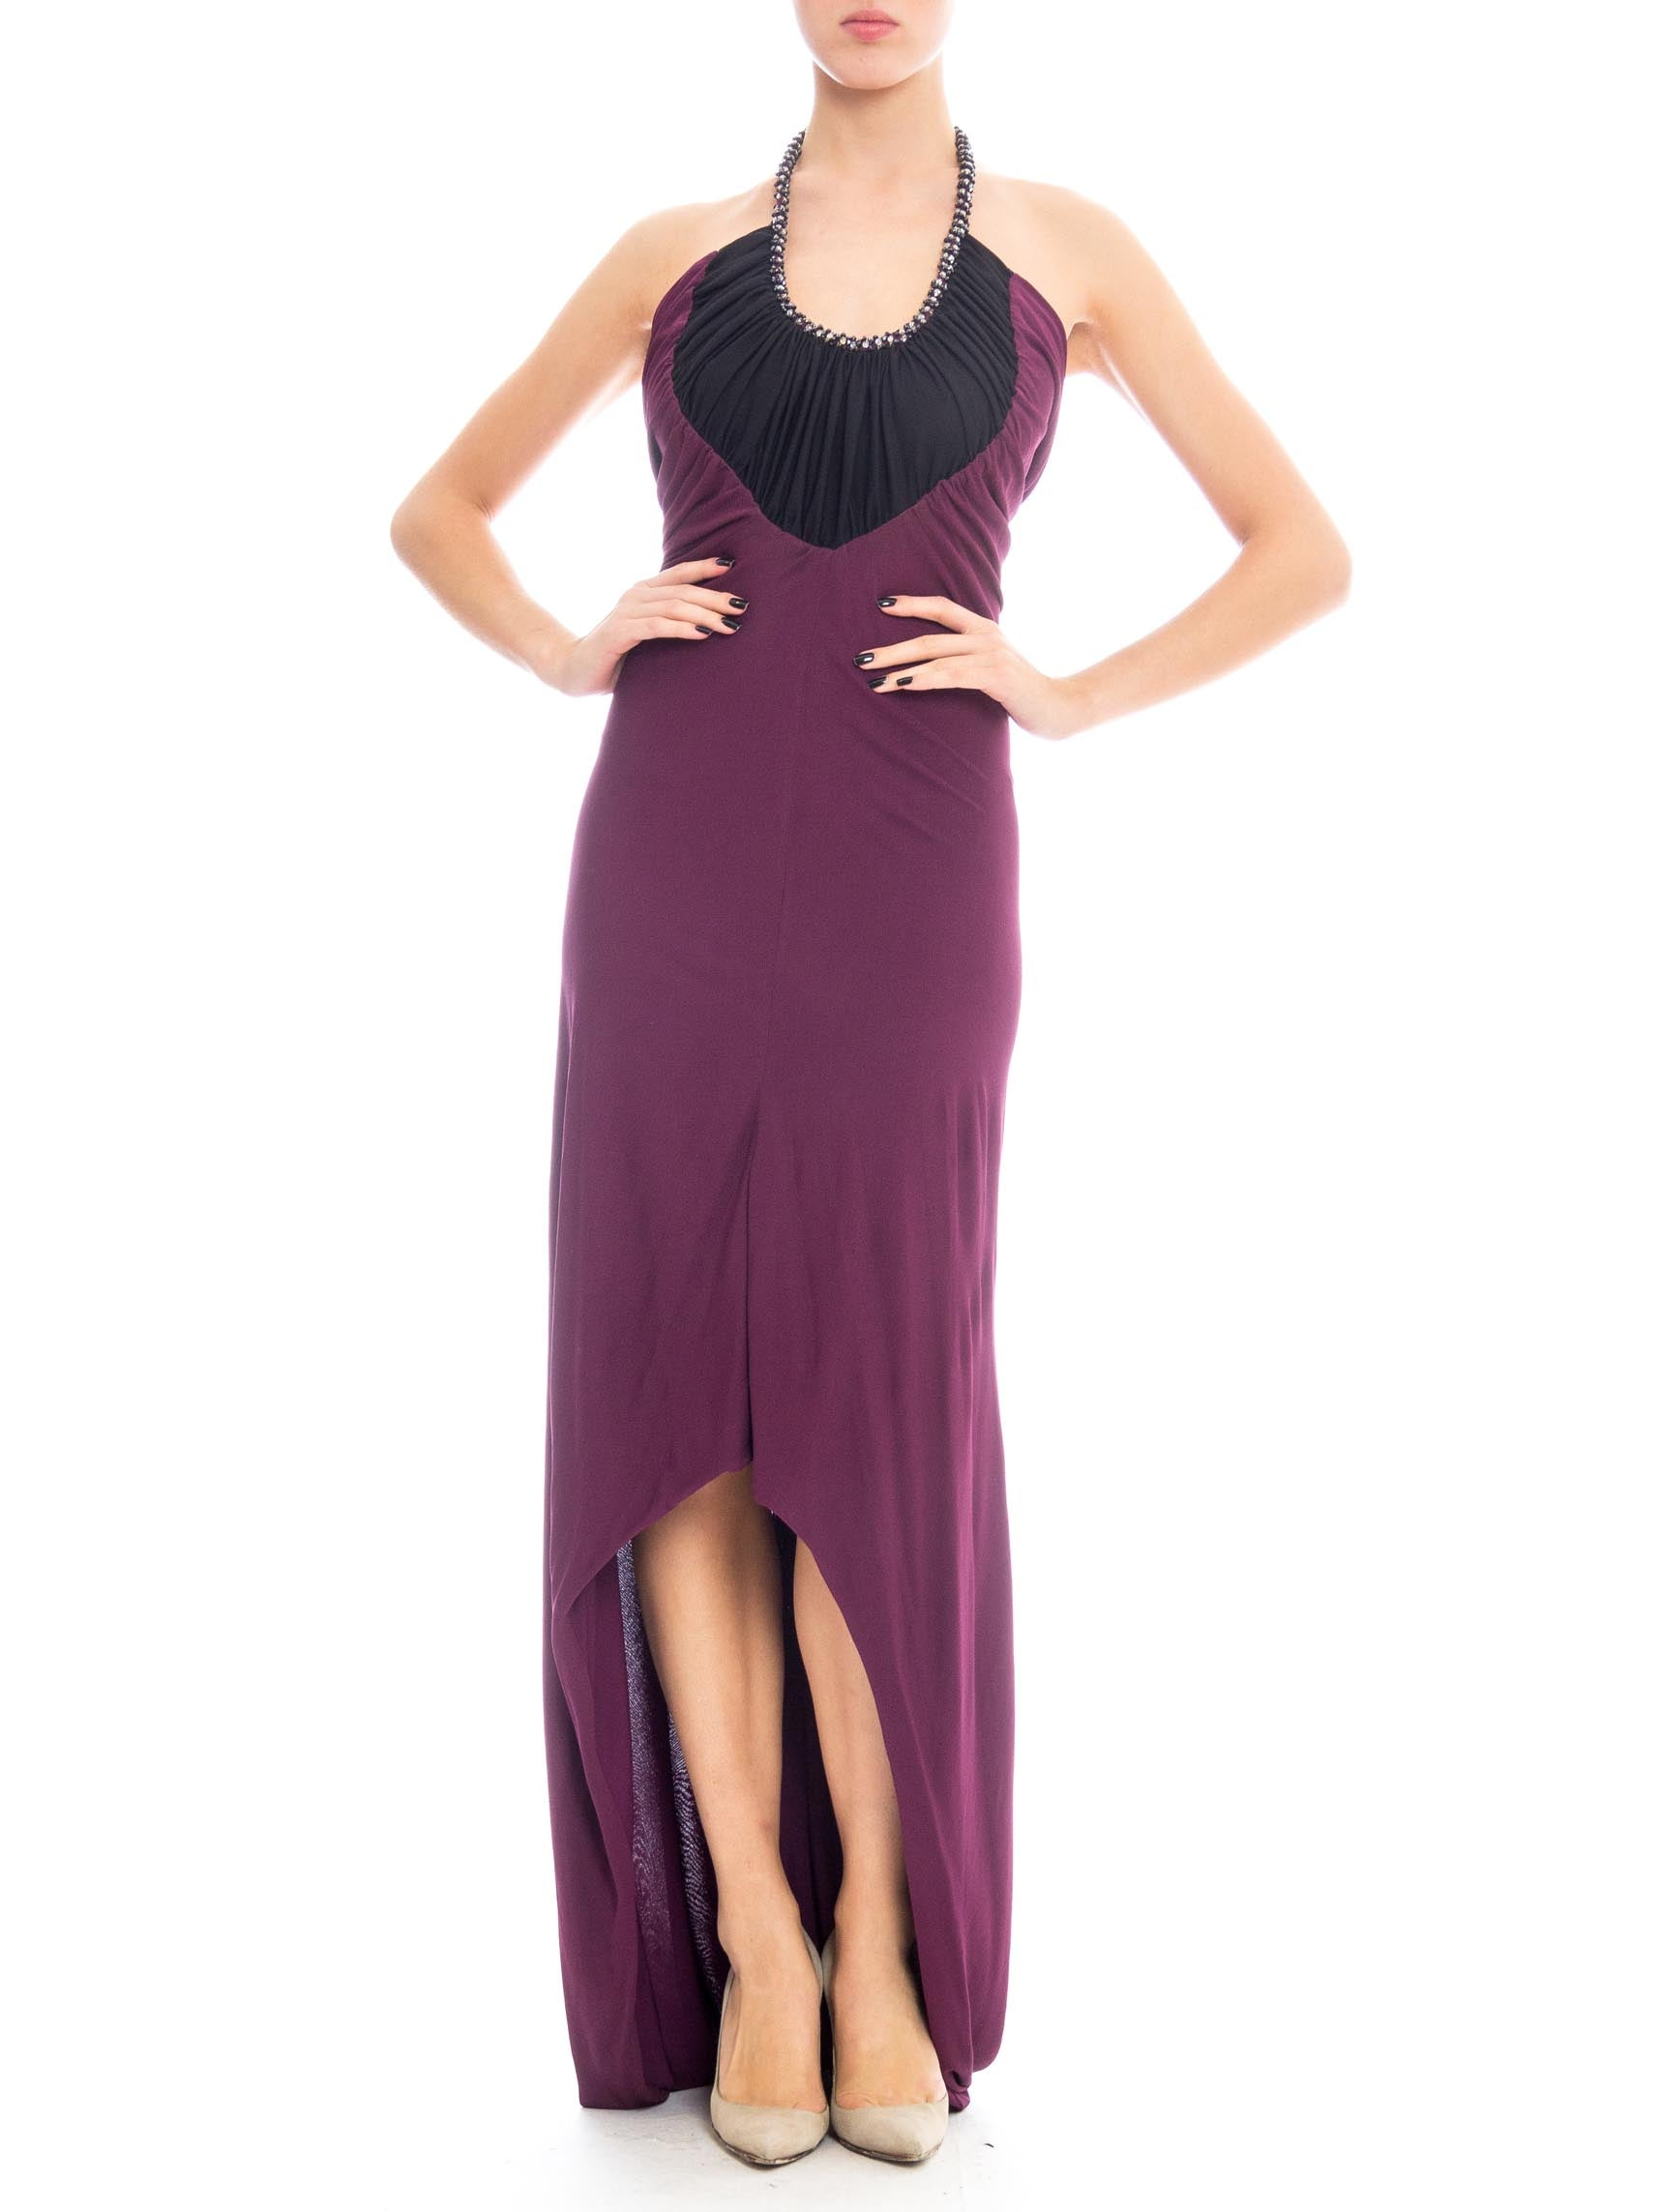 1970S LORIS AZZARO Black & Purple Viscose Jersey Slinky Disco Trained Gown